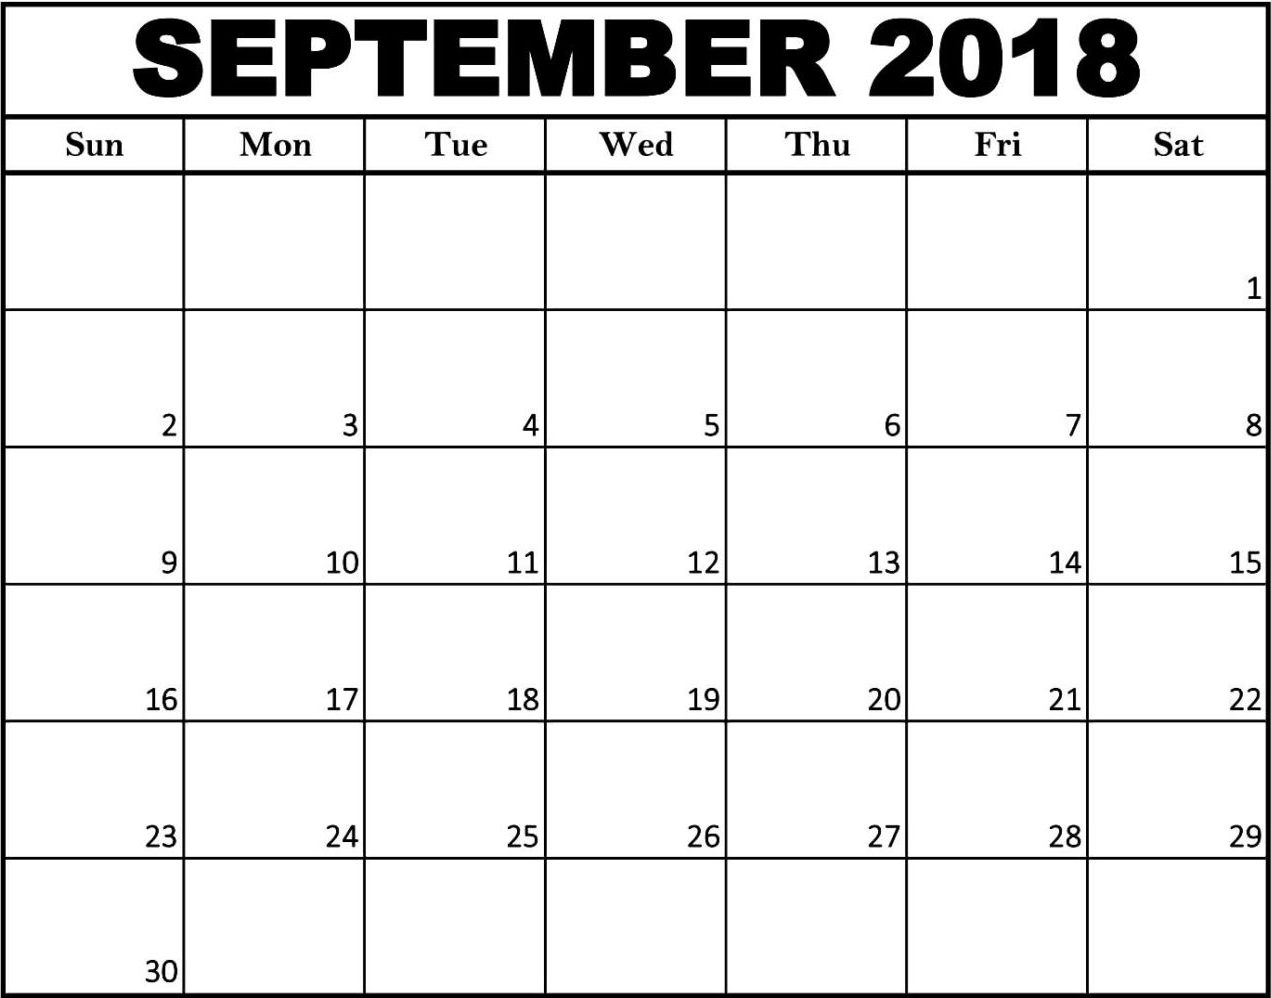 September Calendar 2018 Template for Printable Blank September Calendar